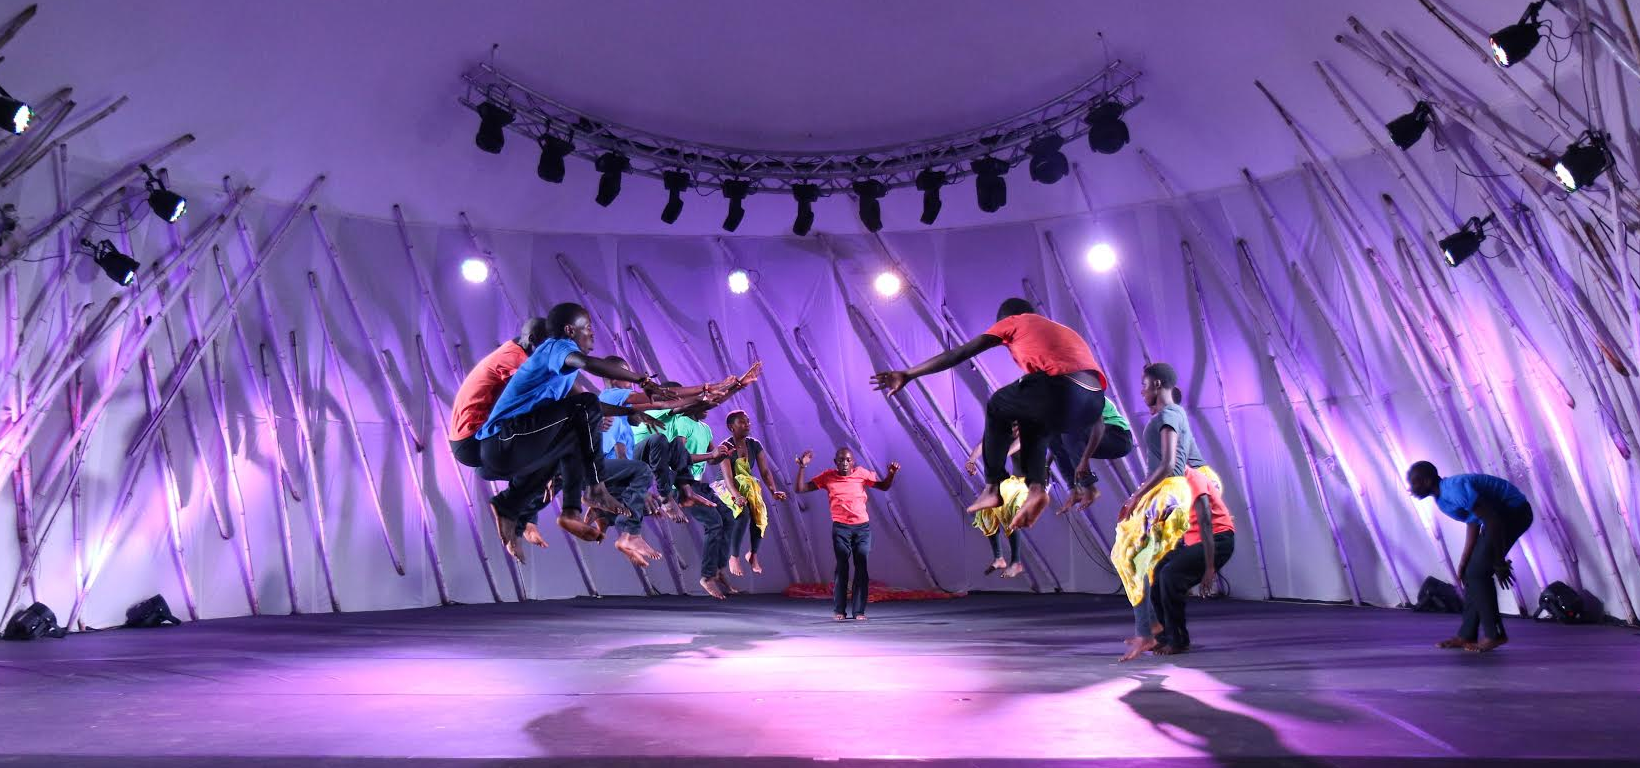 Several intersting performances will continue during the four-day Ubumuntu Arts Festival